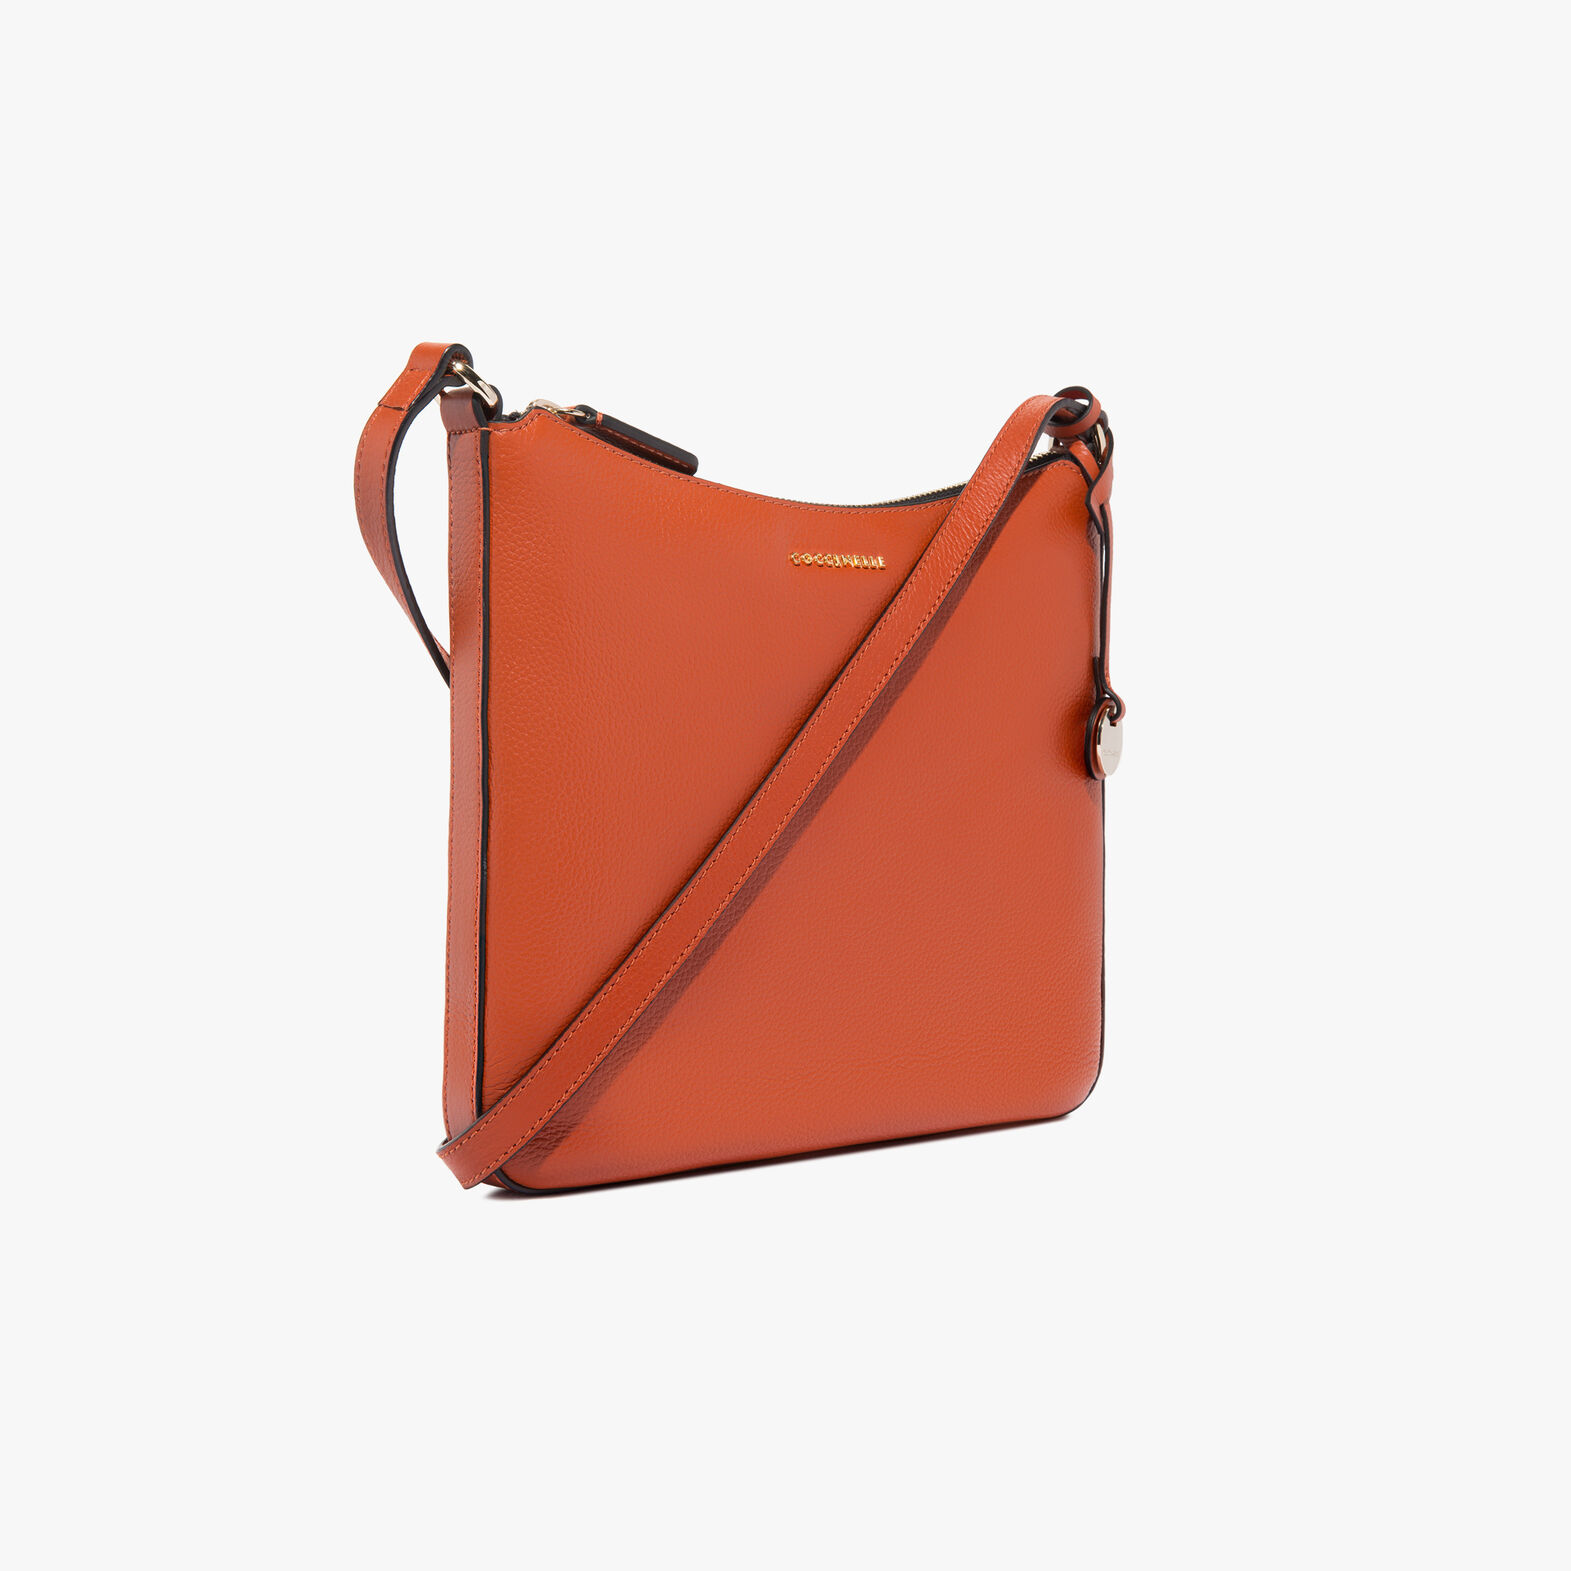 Coccinelle Clementine leather crossbody bag